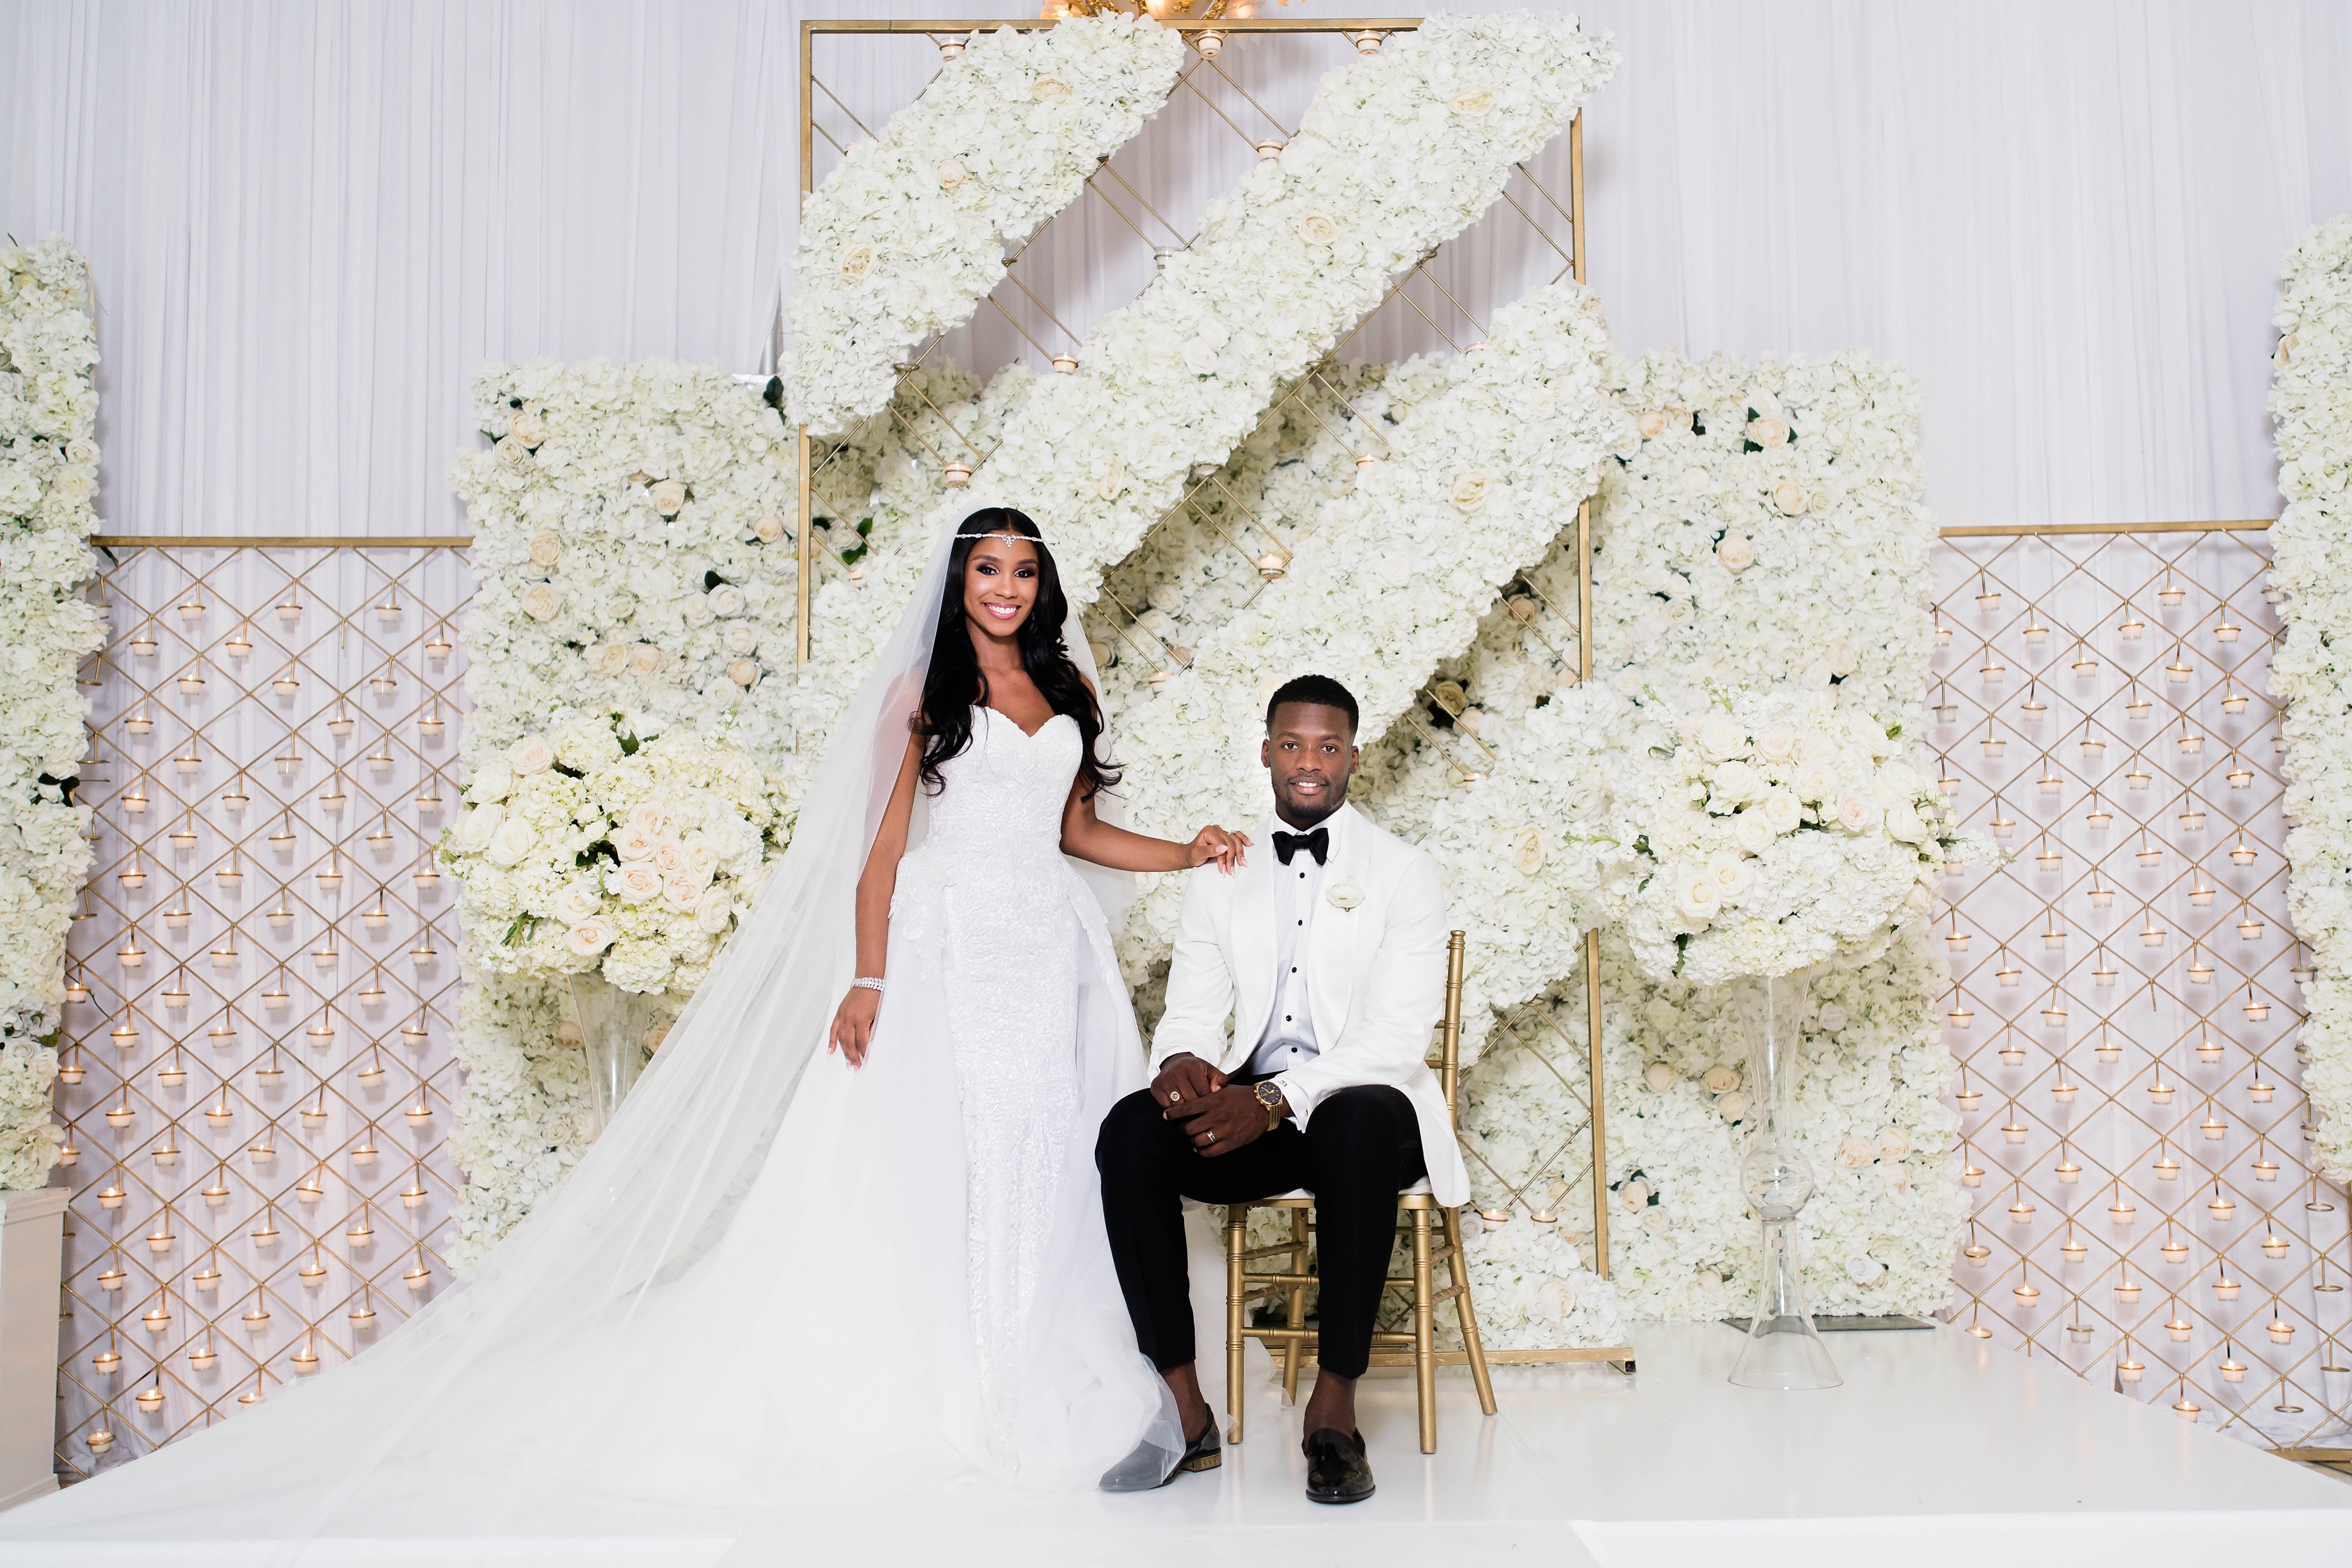 Luxury wedding with floral background and an African American couple - Photography: Pharris Photos